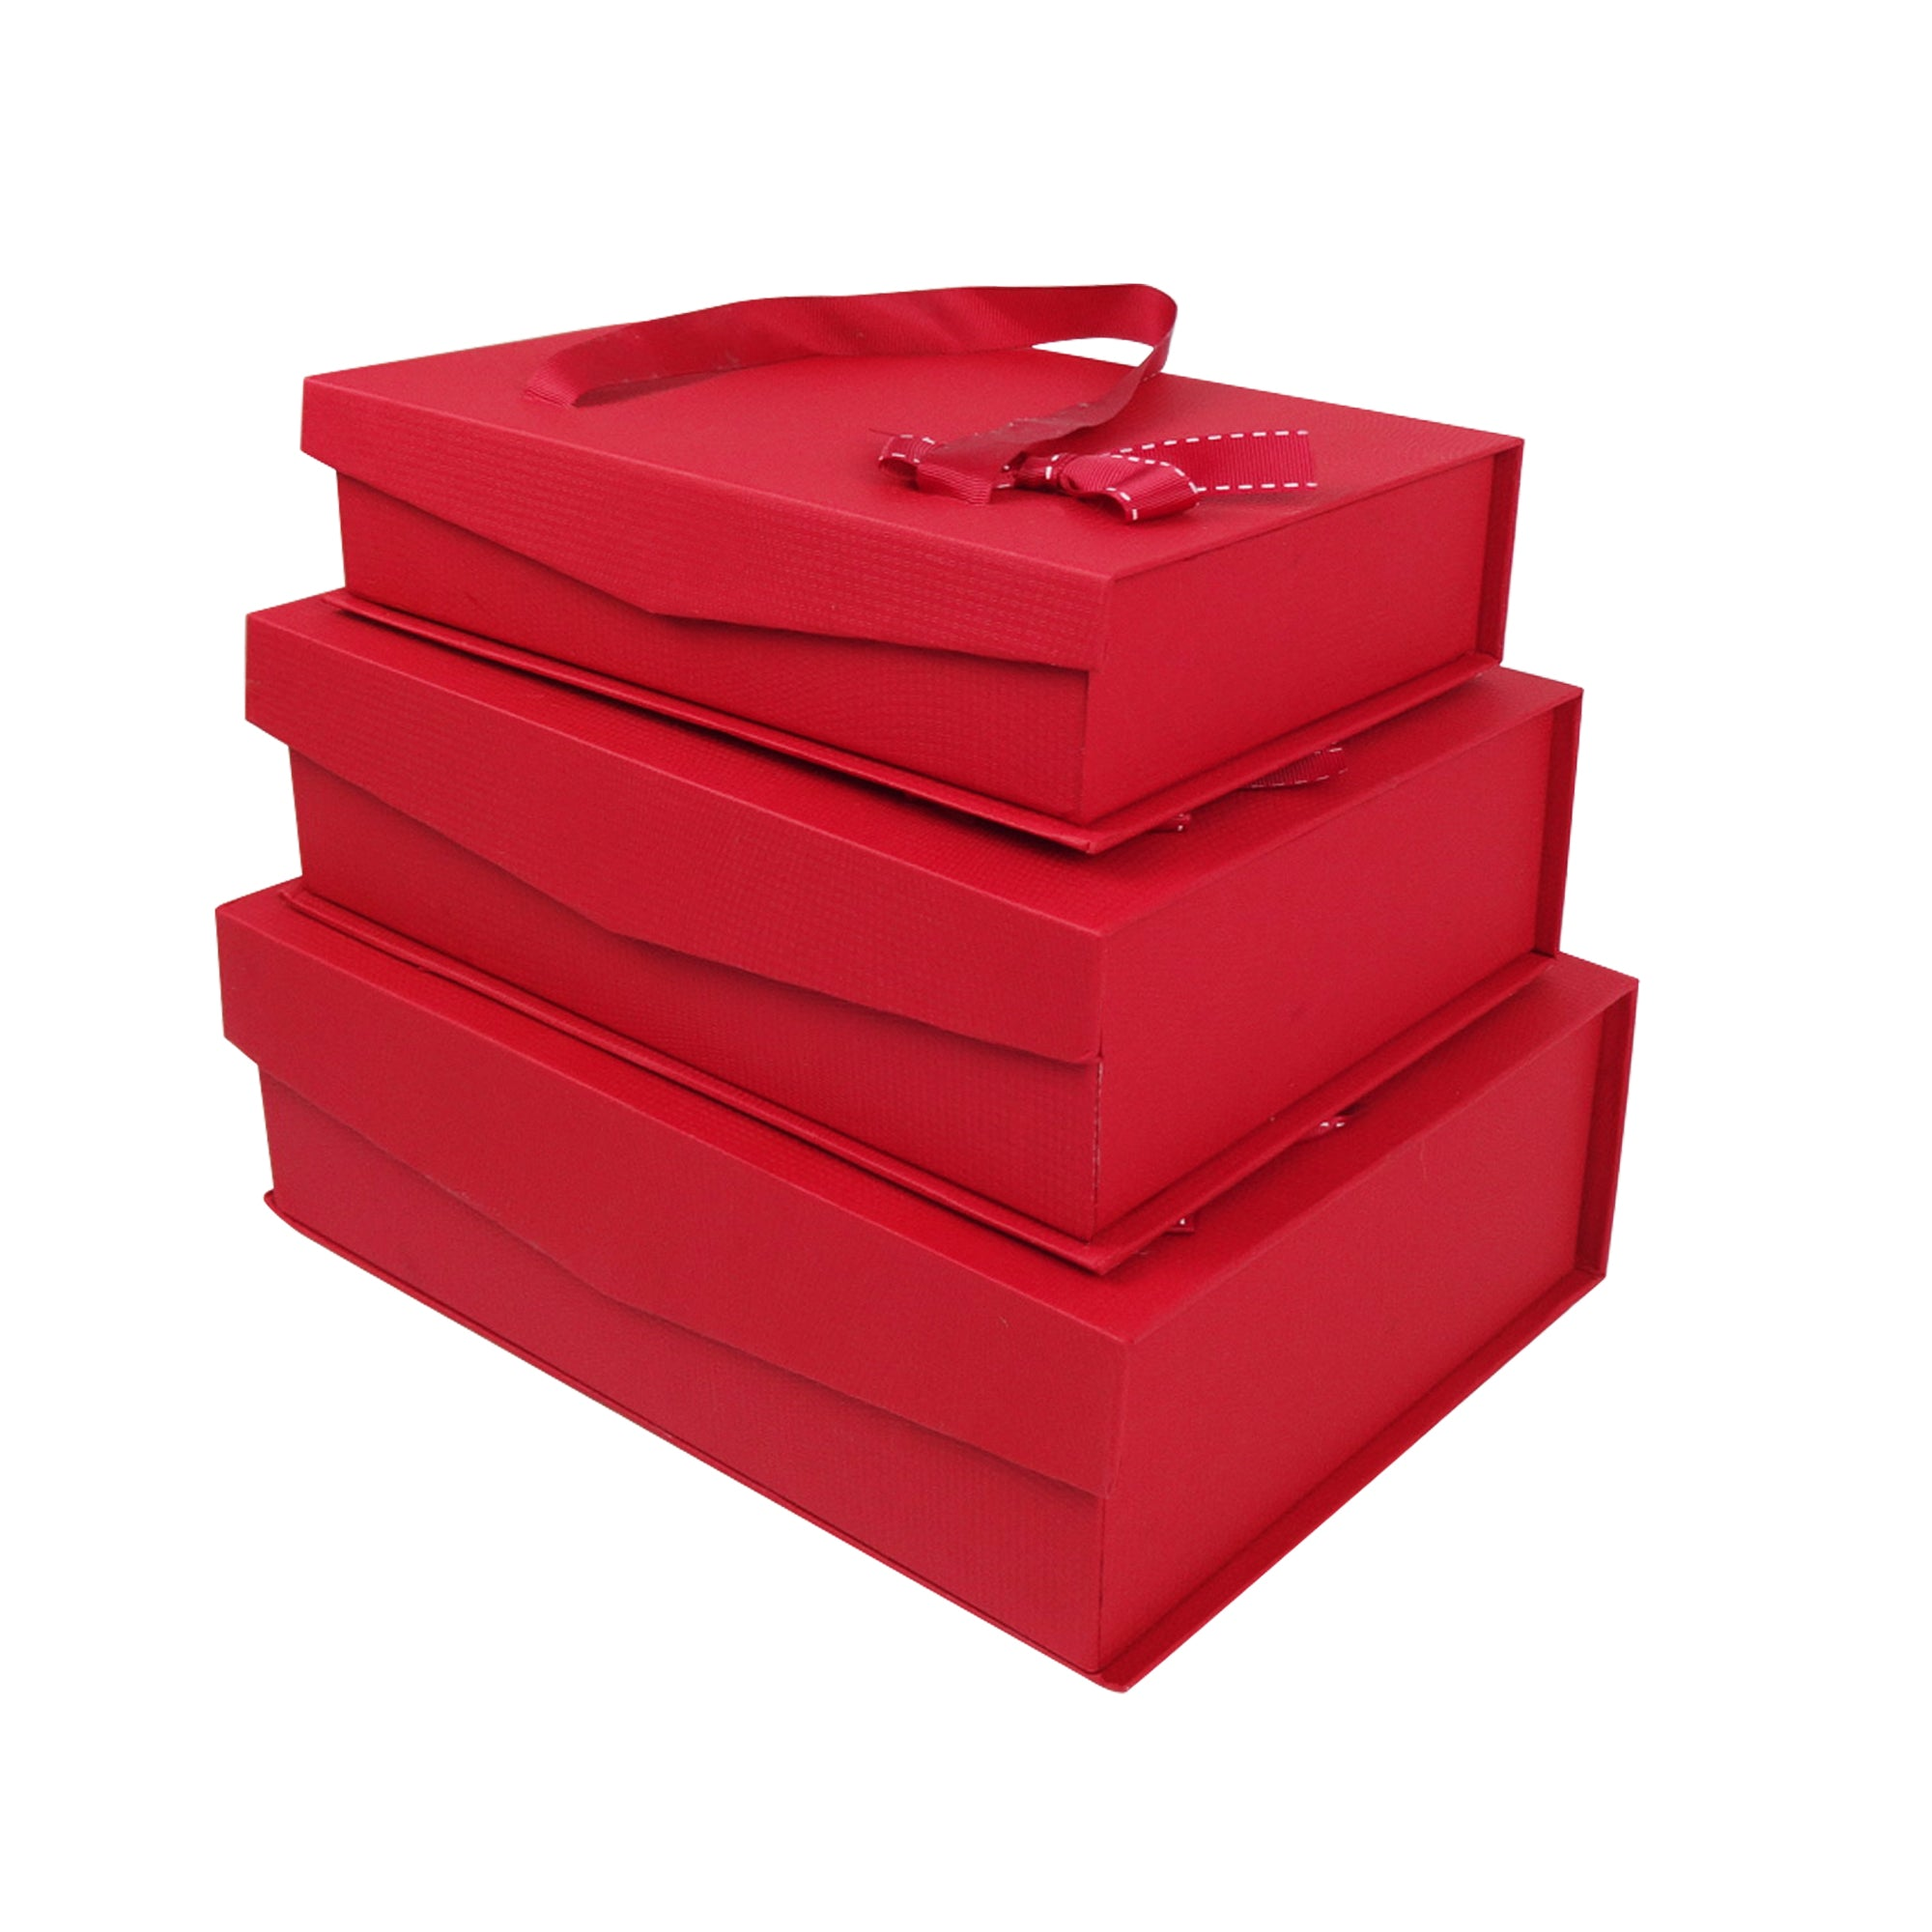 Red Magnetic Gift Box - Set of 3